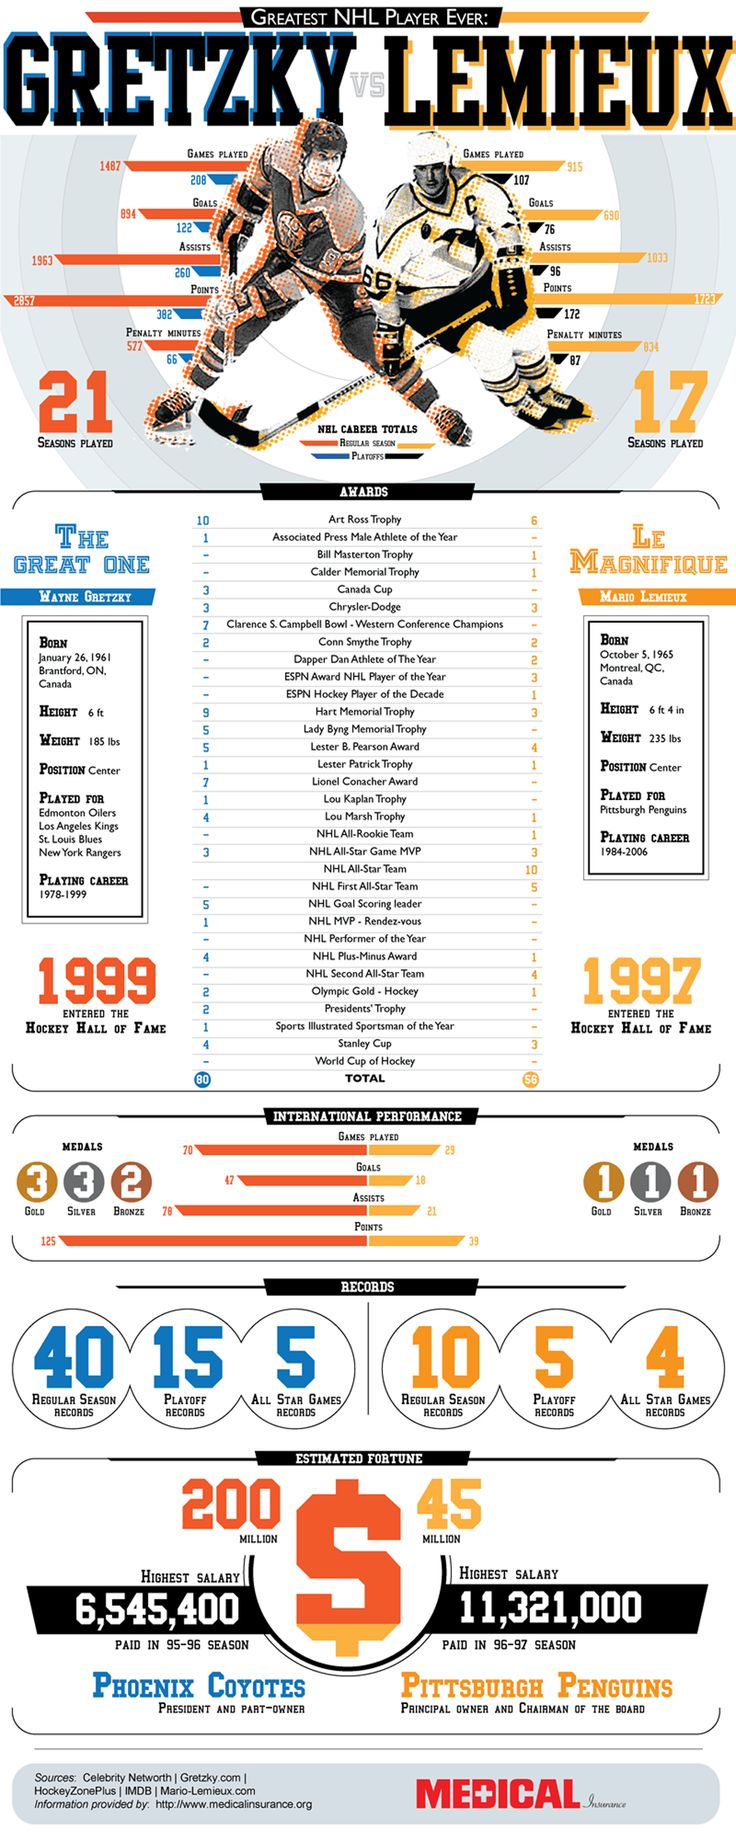 Who is the greatest NHL player ever? MedicalInsurance.org created this infographic comparing Wayne Gretzky and Mario Lemieux up to 2010.